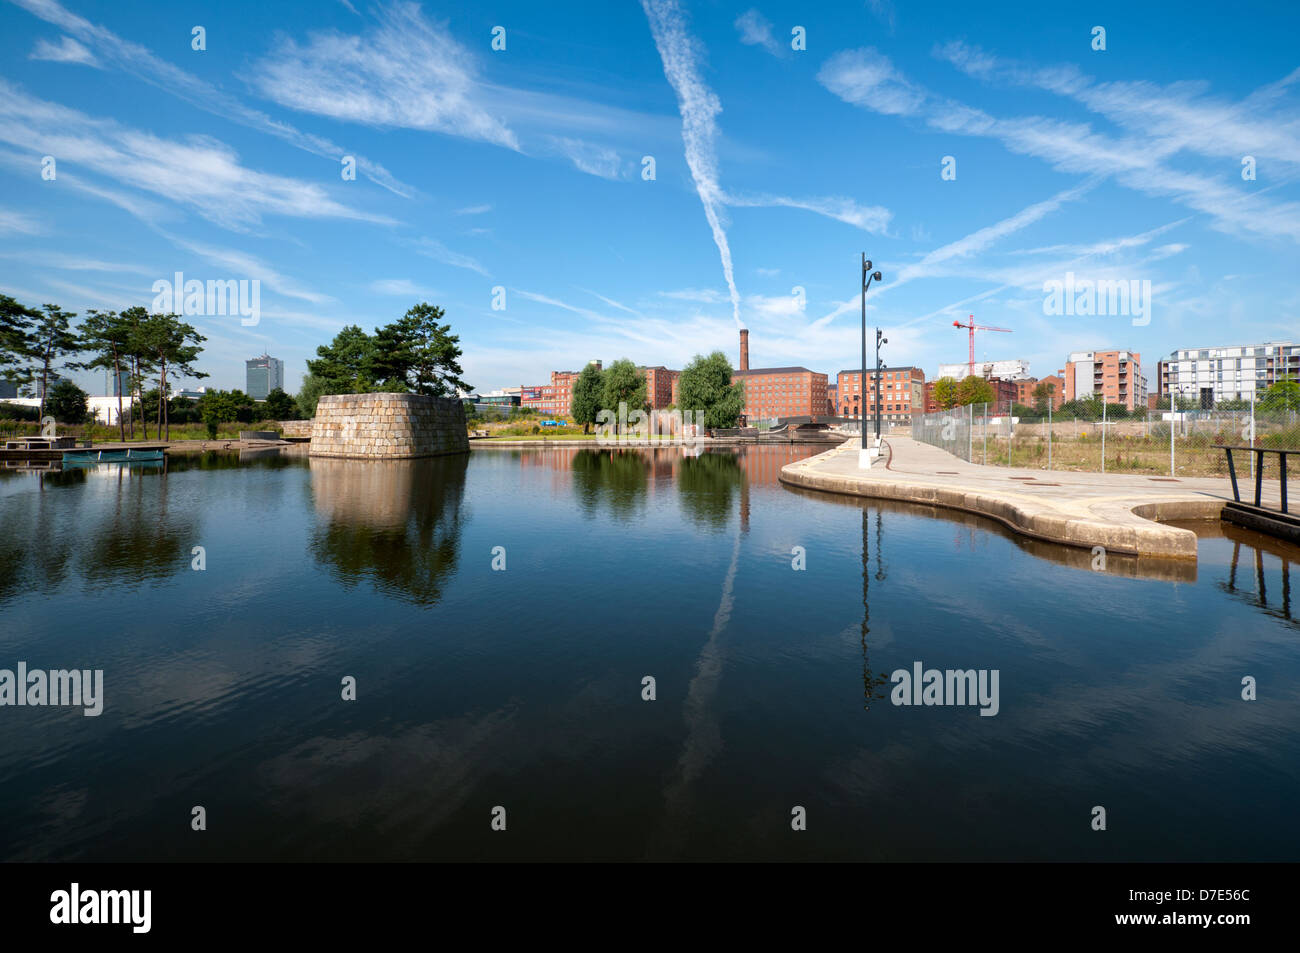 Cirrus clouds and former cotton mills reflected in the Cotton Field Park marina, New Islington, Ancoats, Manchester, - Stock Image